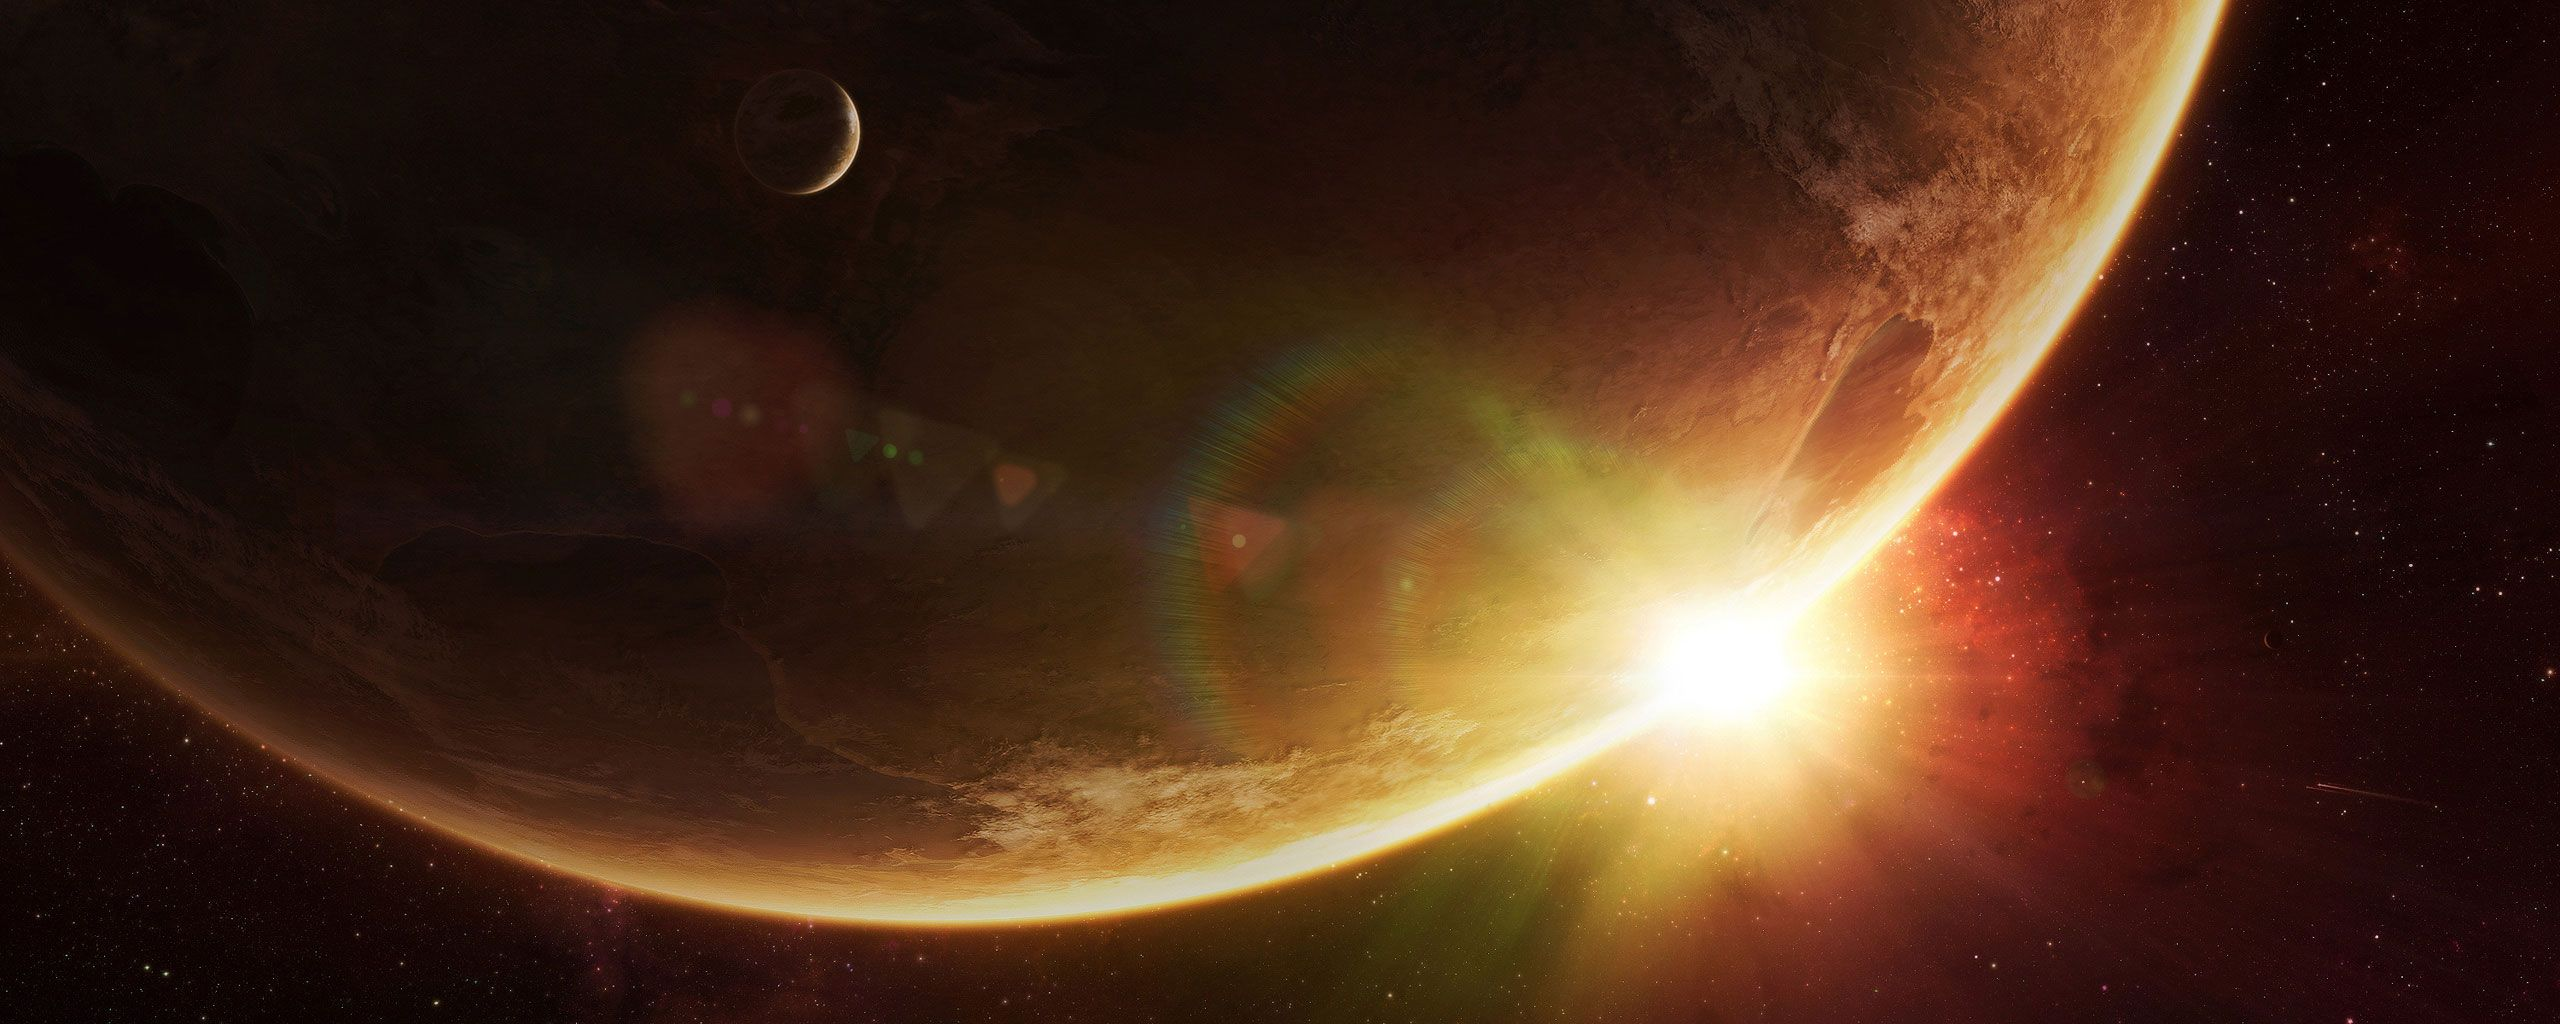 2560x1024 Outer Space Planet Dual Screen Wallpaper | 2560x1024 | ID:45893 ...